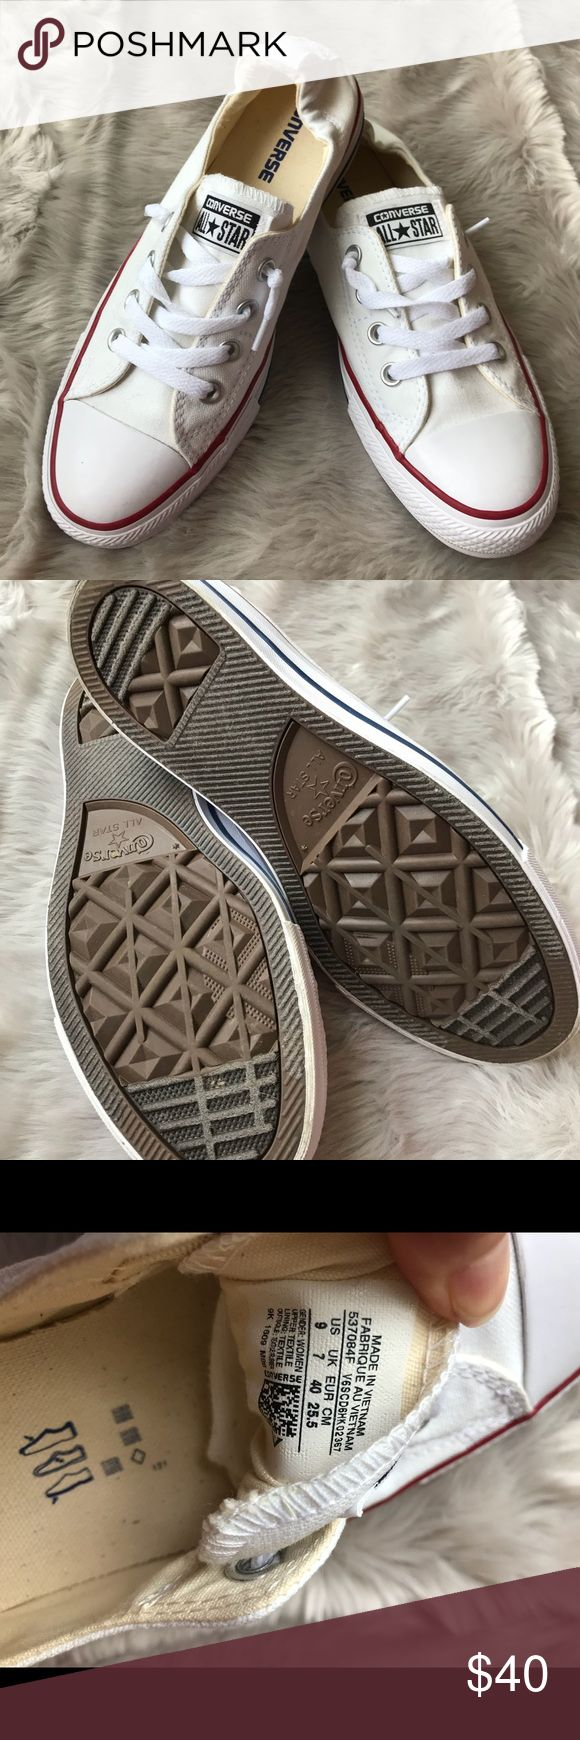 White Converse slip ons White Converse slip on's in like new condition! Converse Shoes Sneakers